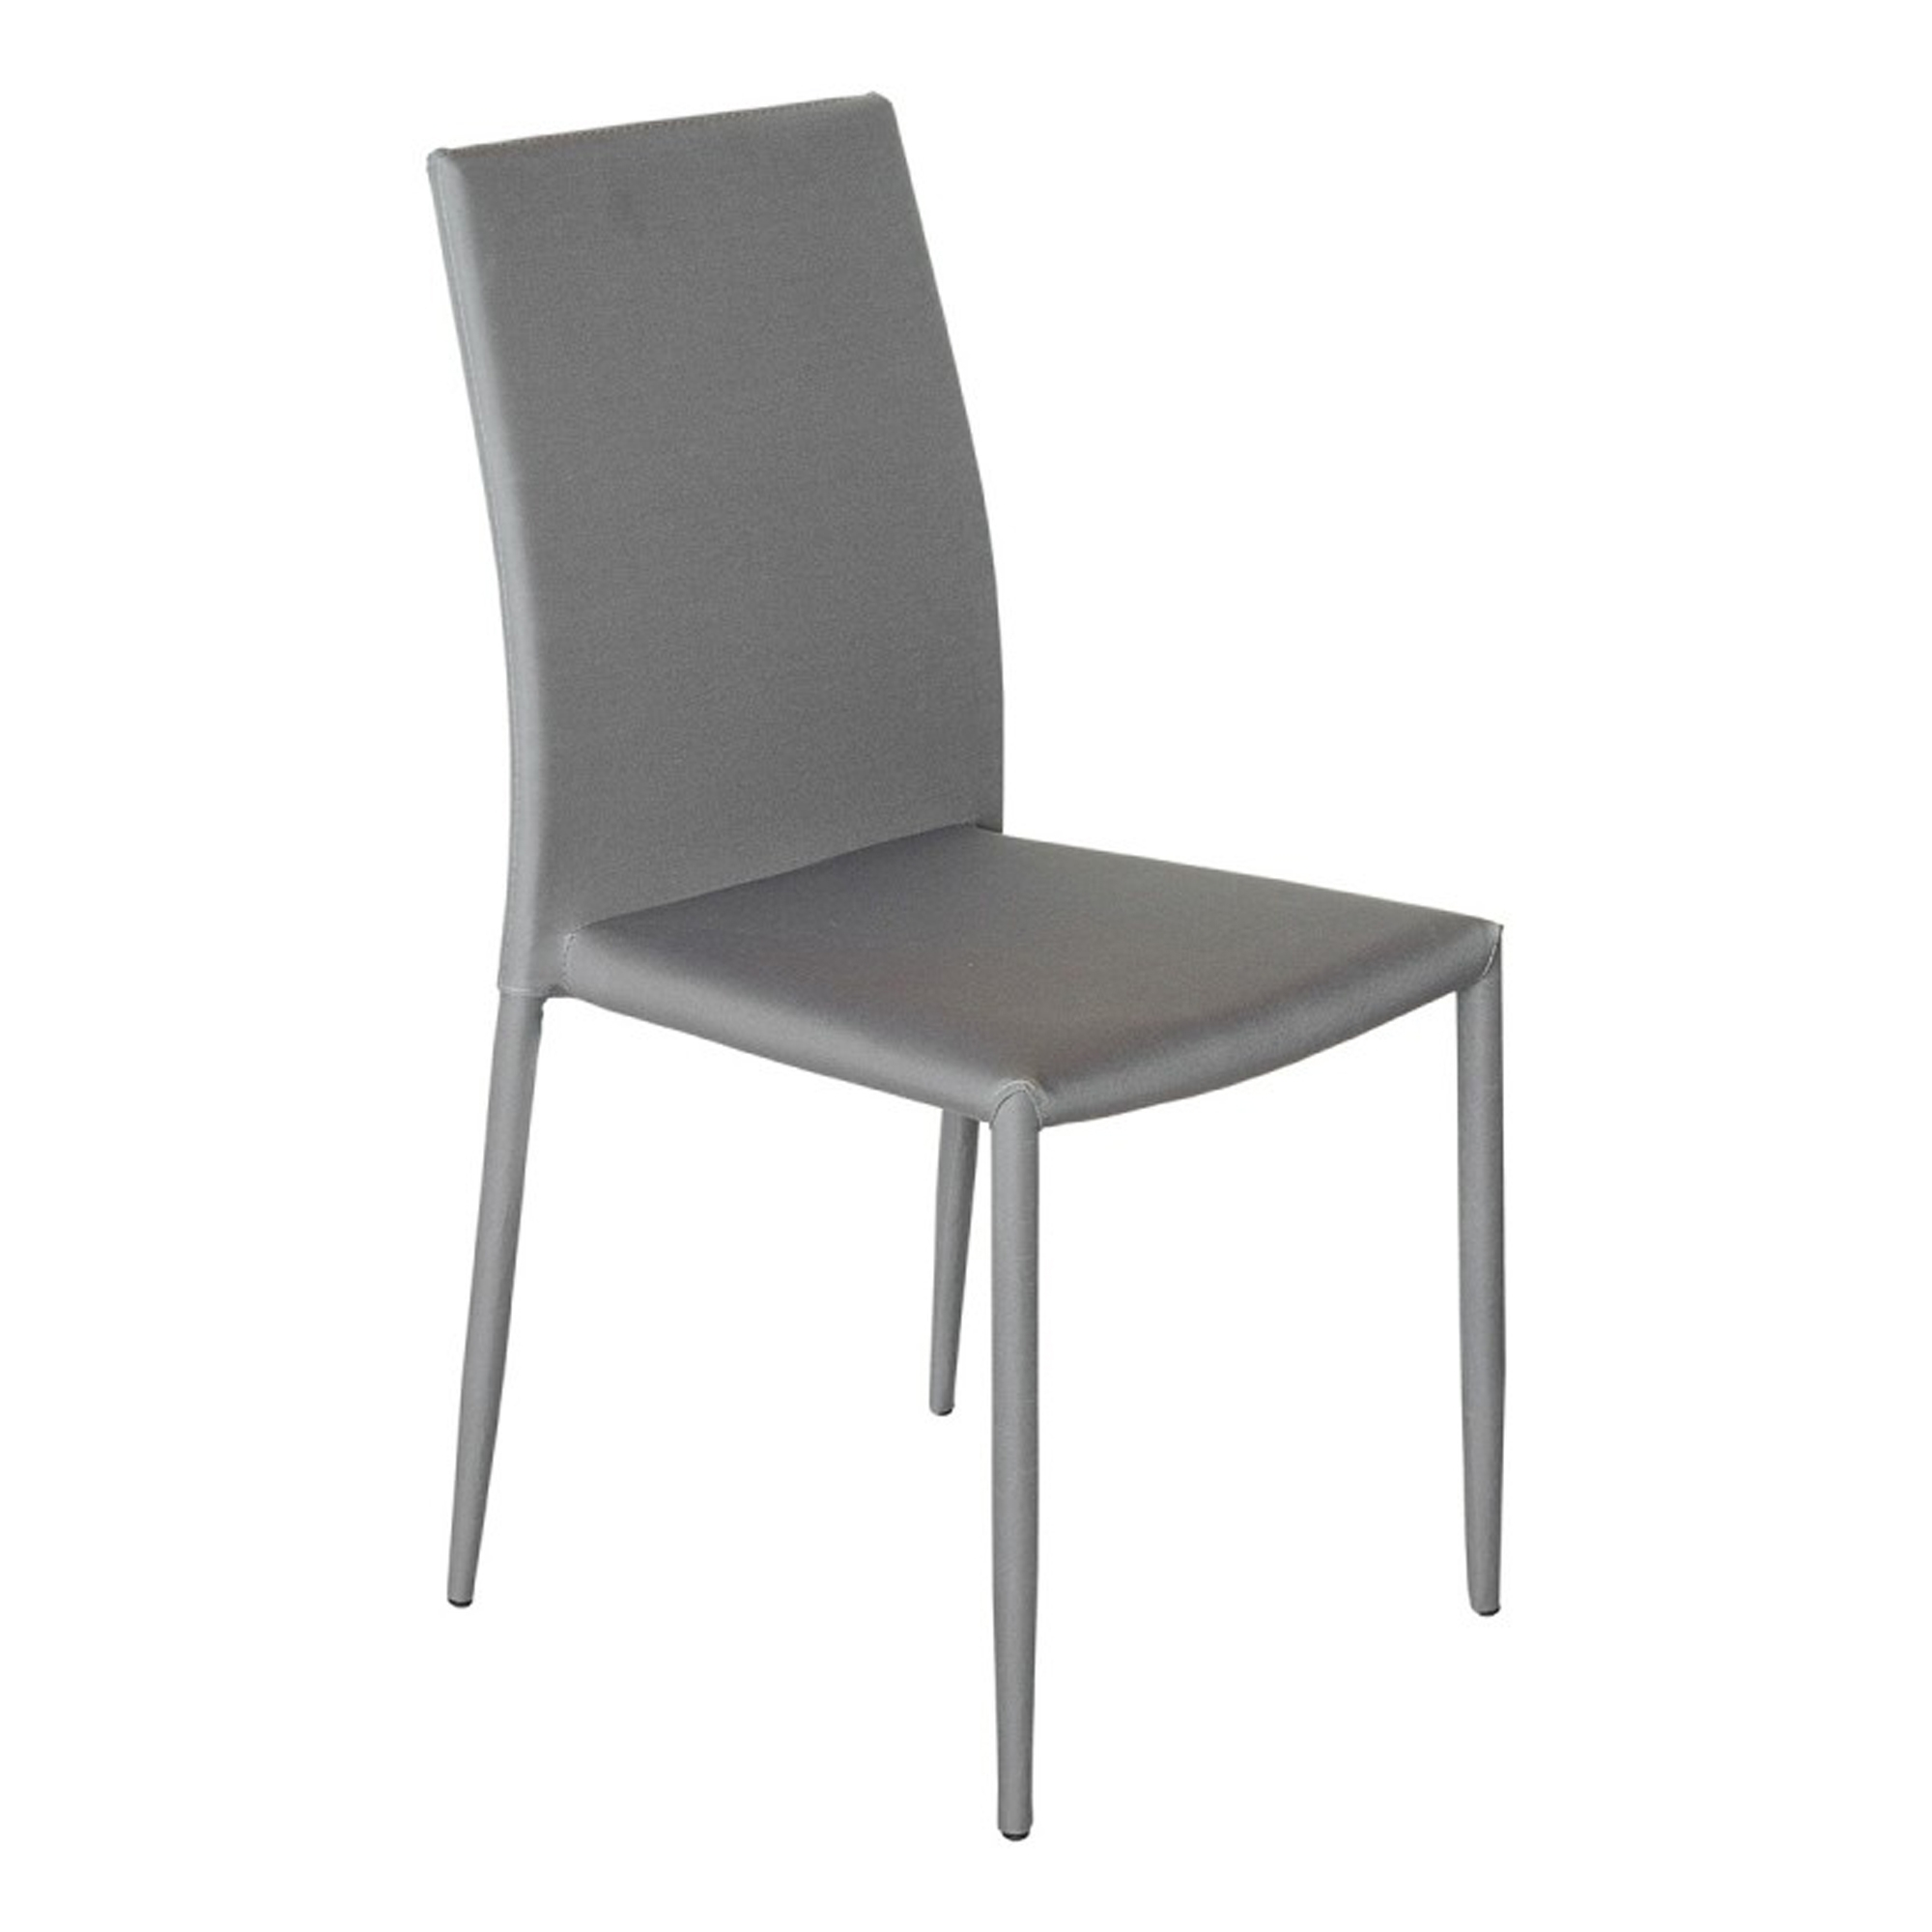 Excellent Selina Stacking Dining Chair Machost Co Dining Chair Design Ideas Machostcouk